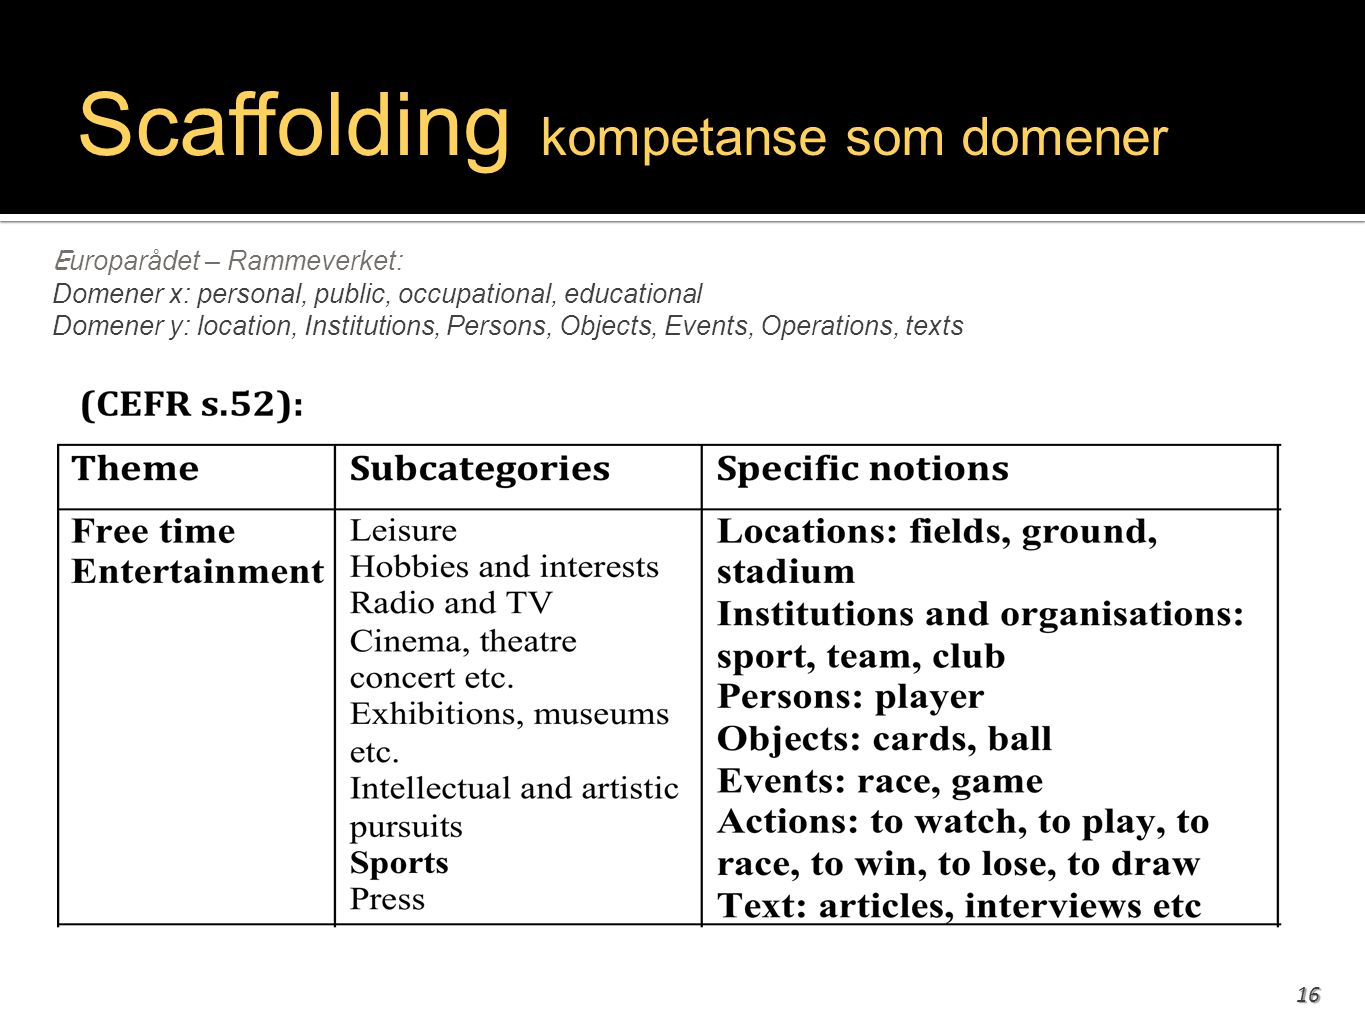 16 Scaffolding kompetanse som domener E uroparådet – Rammeverket: Domener x: personal, public, occupational, educational Domener y: location, Institutions, Persons, Objects, Events, Operations, texts